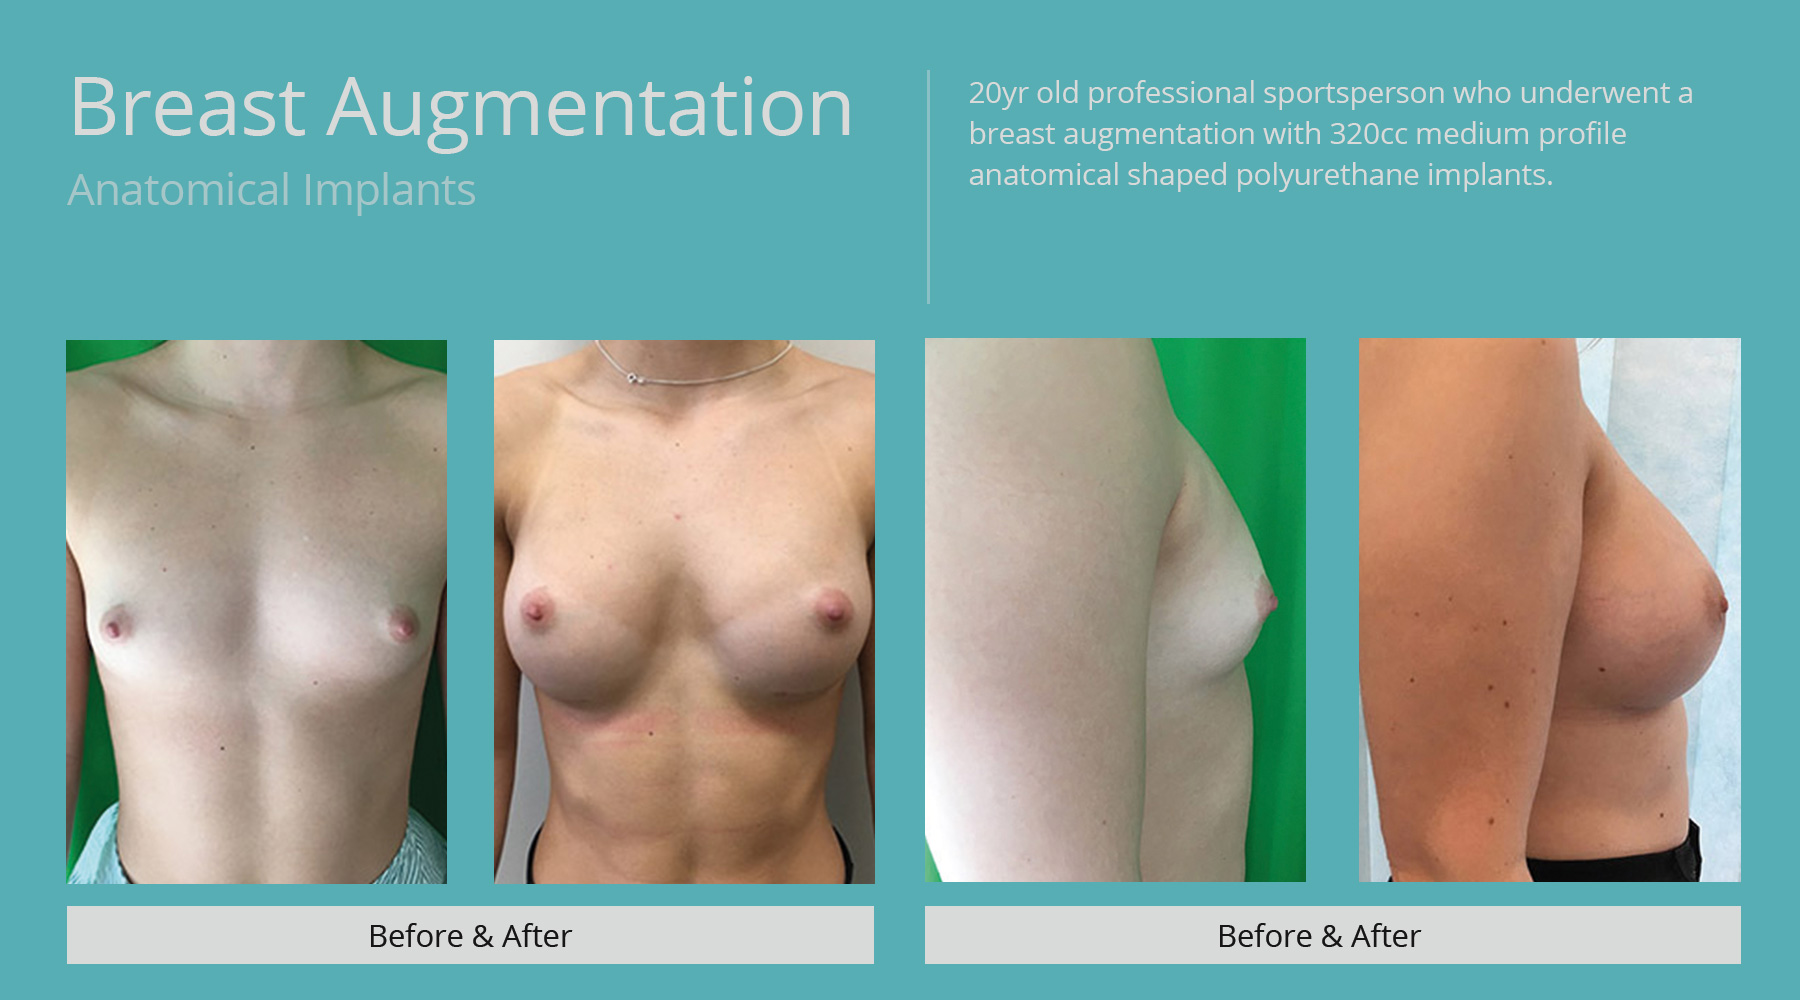 Breast-Augmentation-anatomical-24